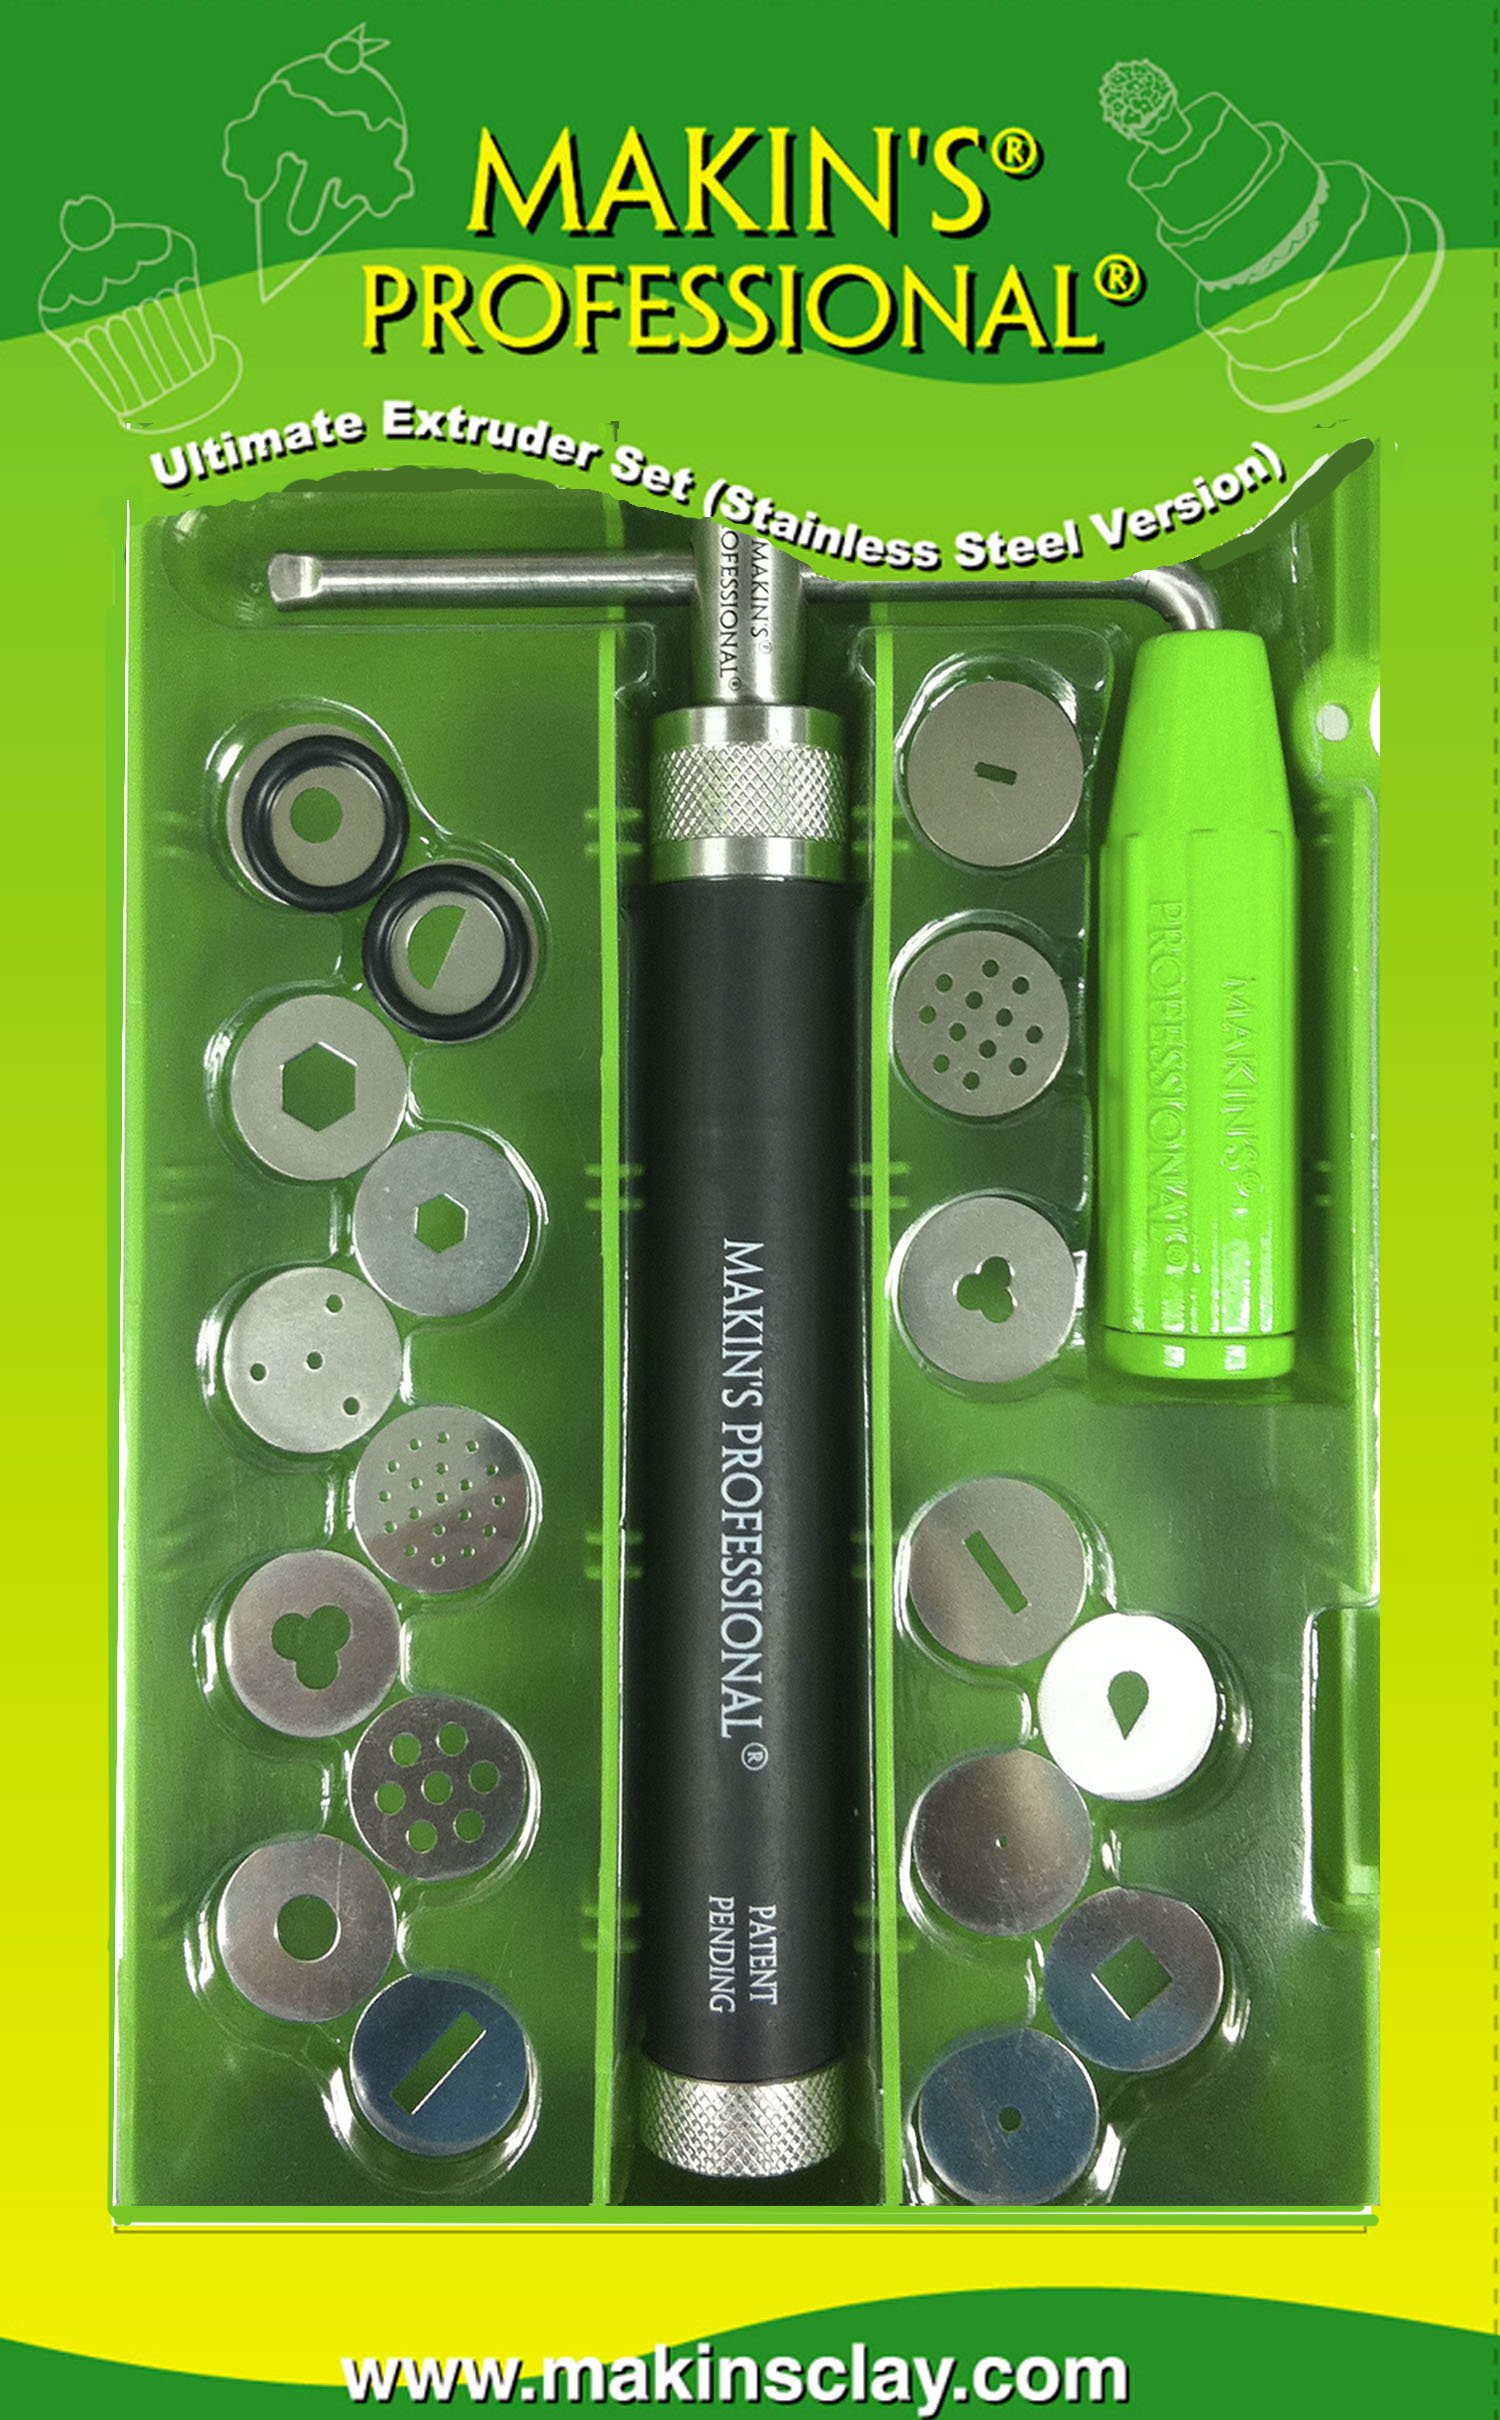 Makin's USA 21-Piece Ultimate Extruder Set, Stainless Steel